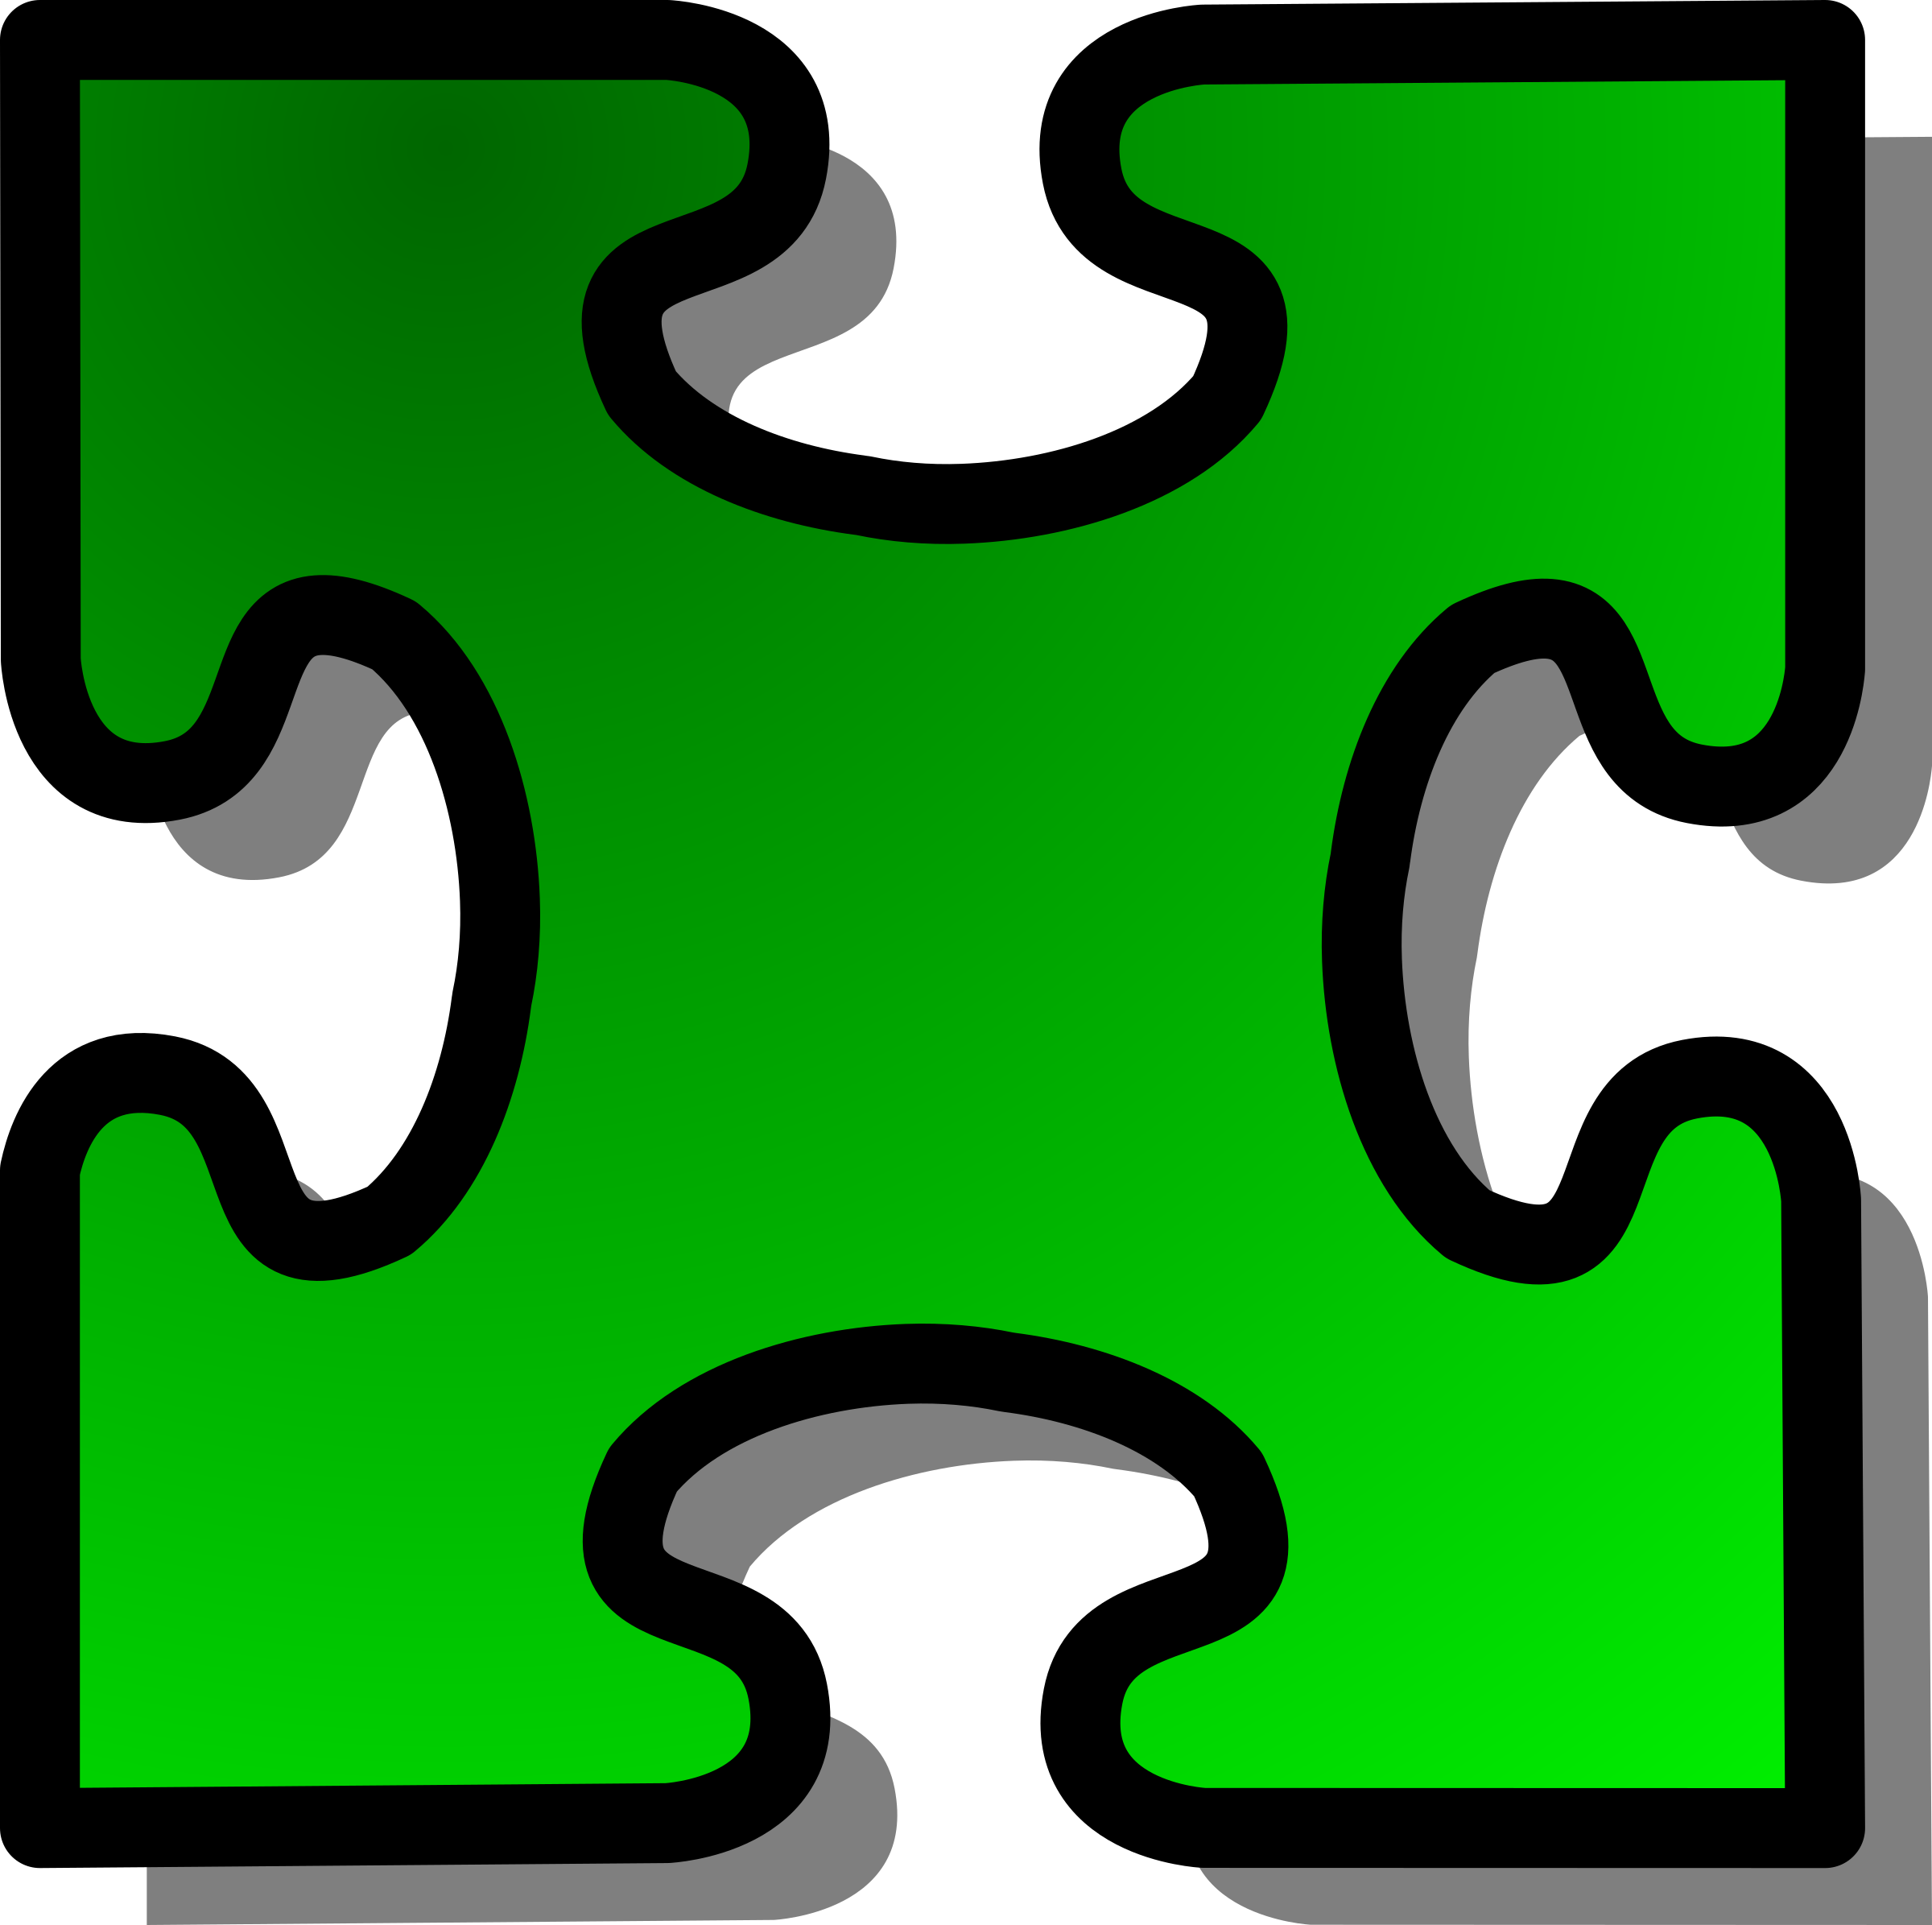 Green Jigsaw piece 03 by nicubunu